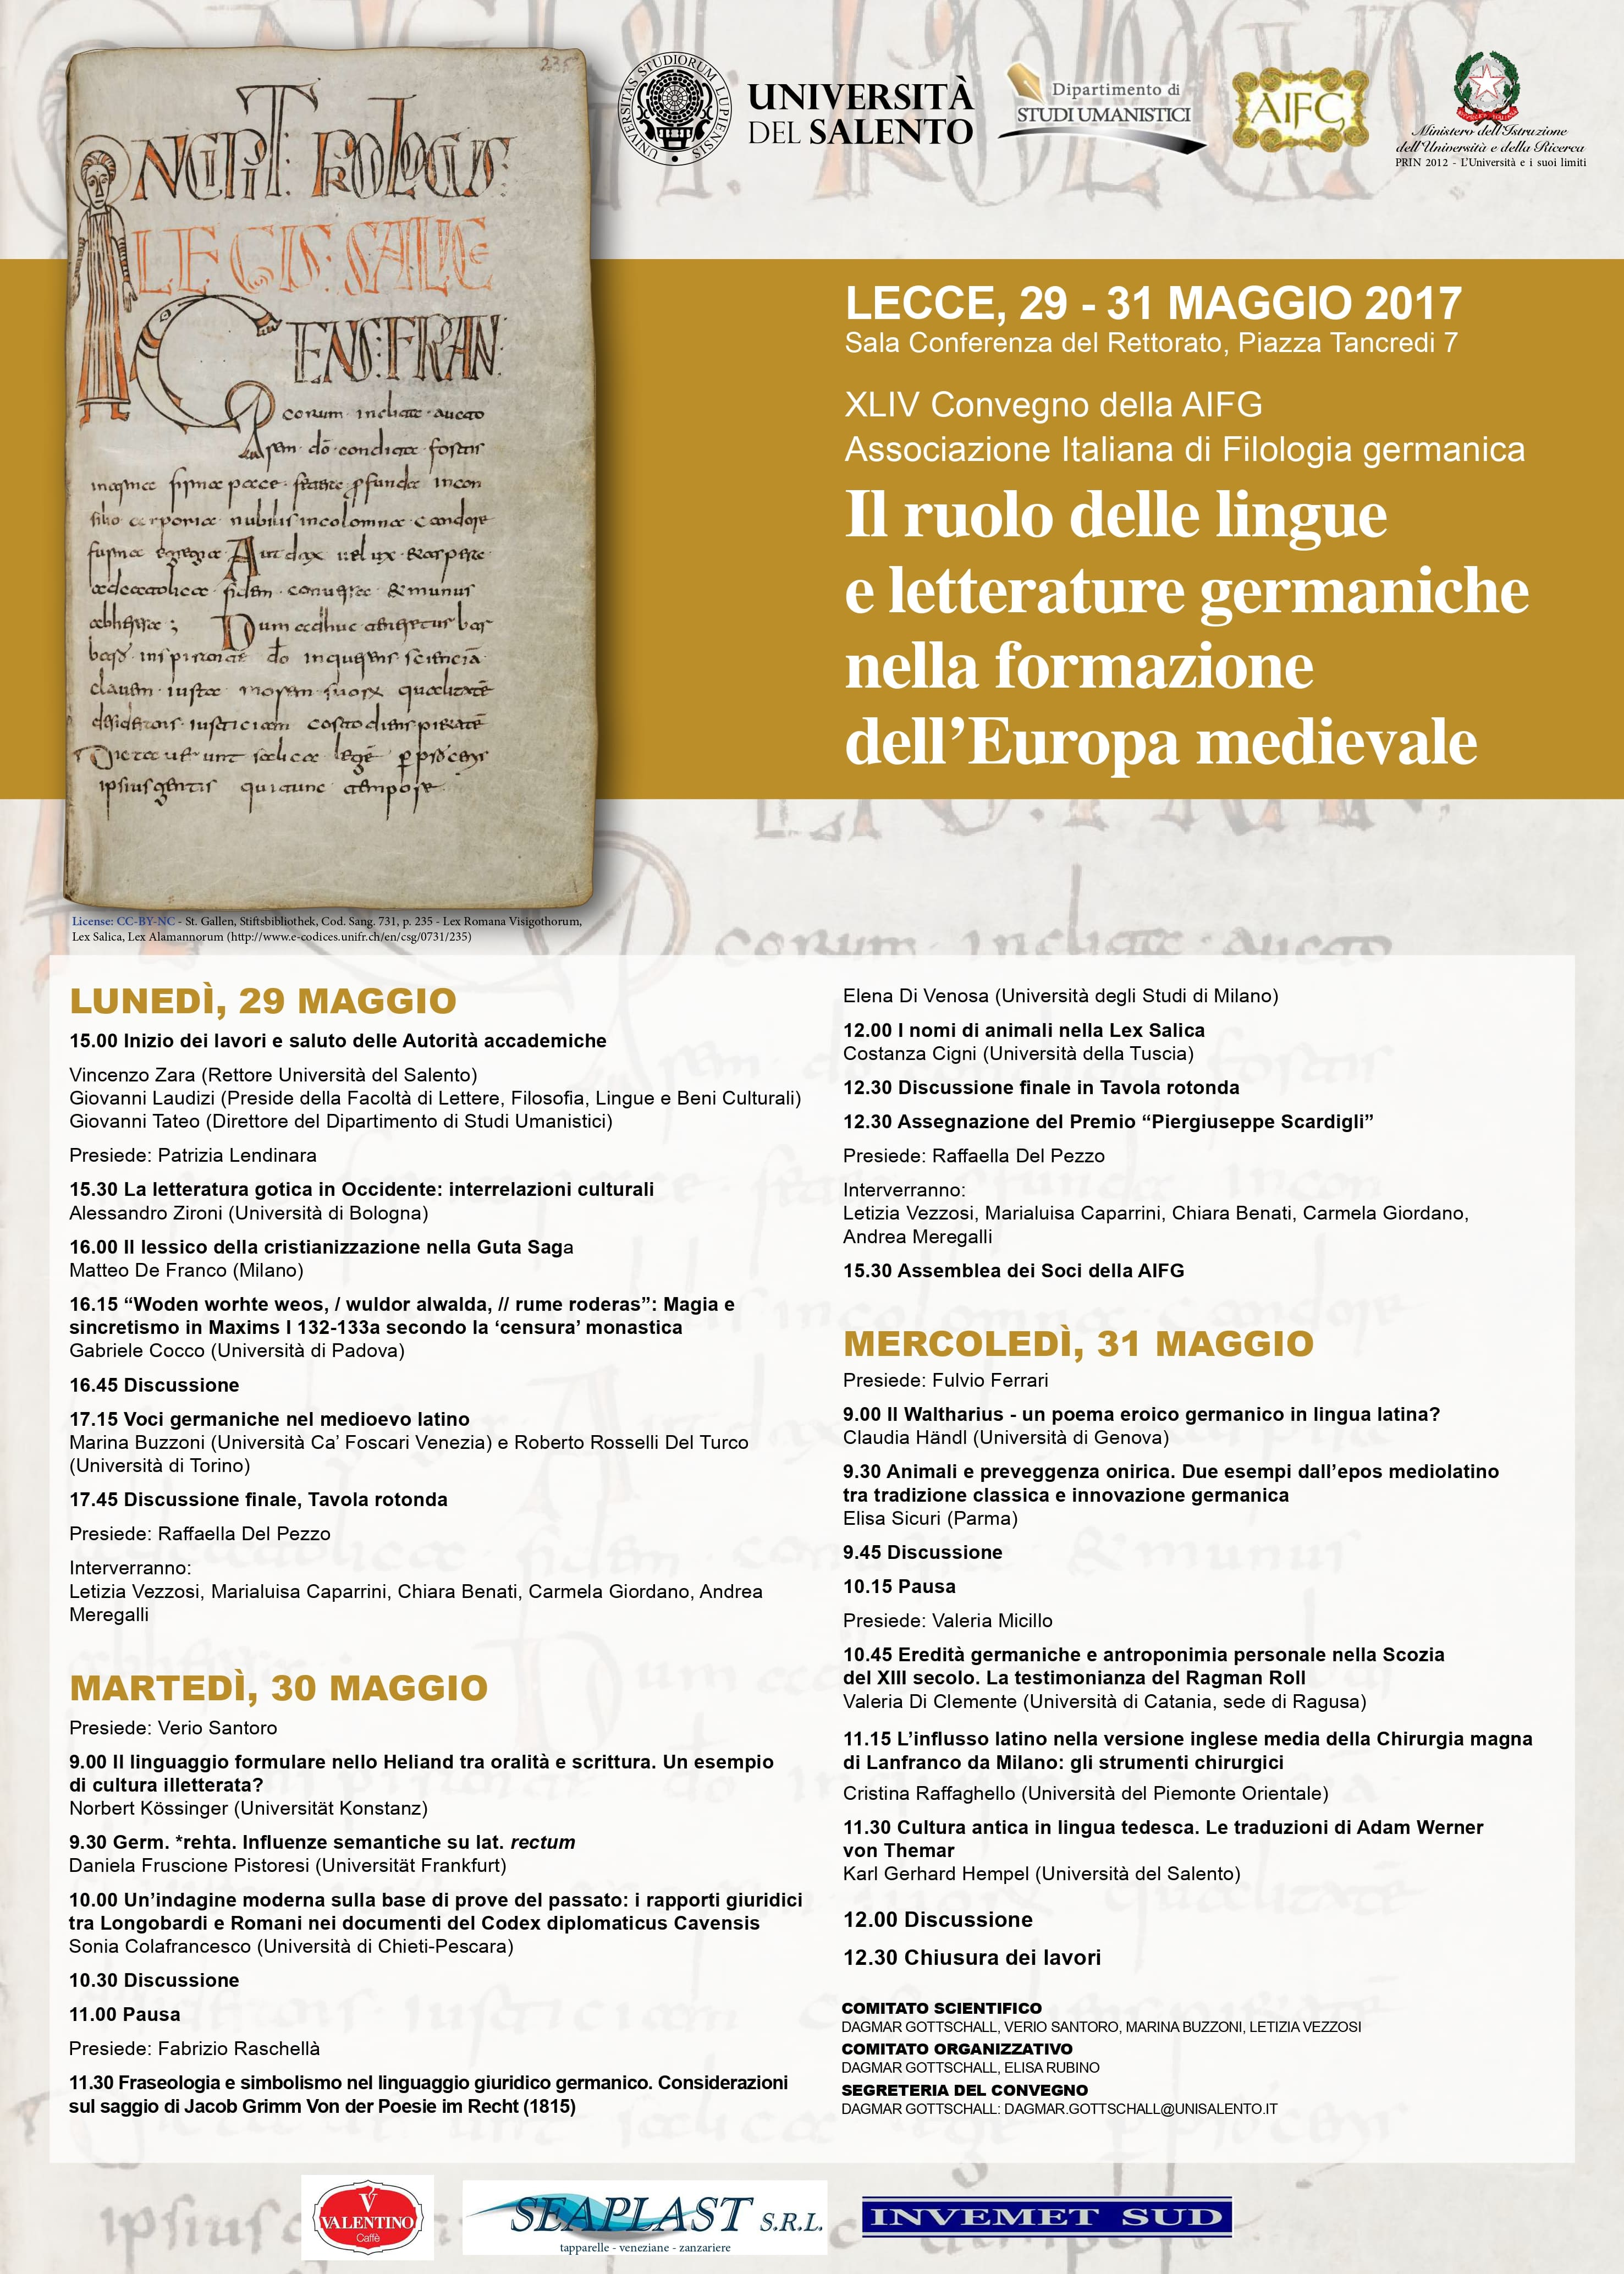 AIFG29_31maggio_compressed_page-00011jpg